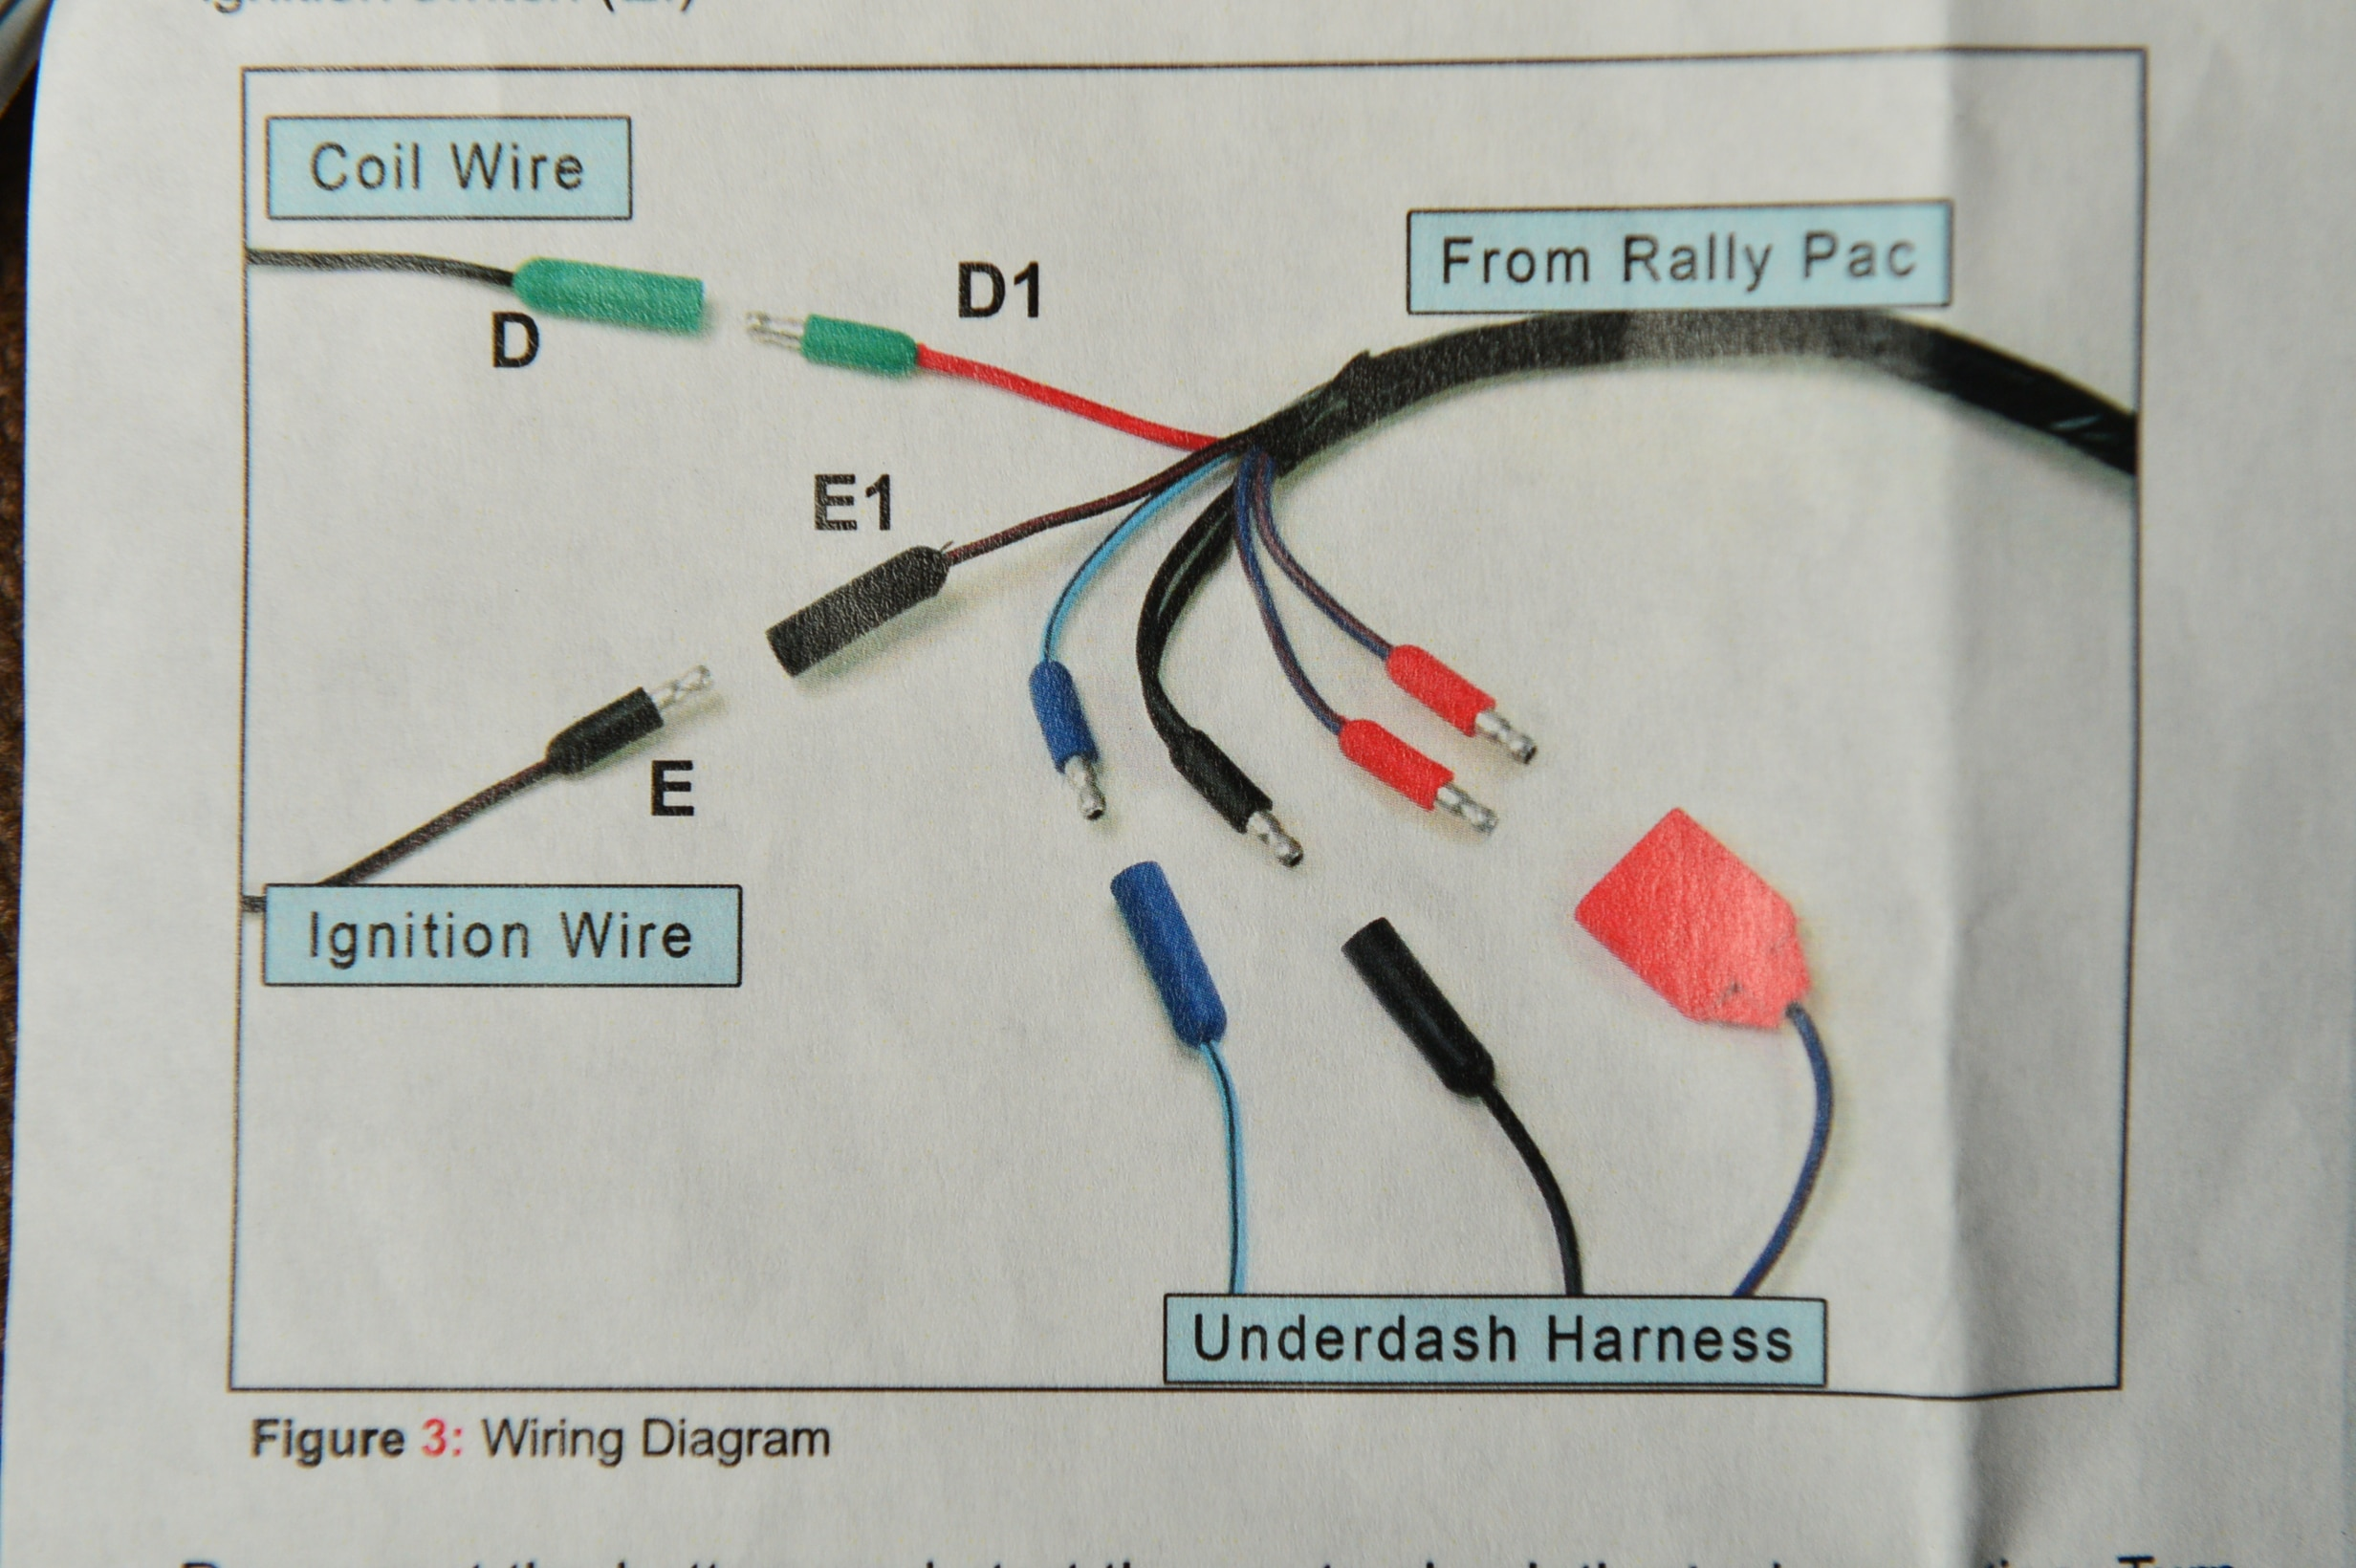 1965 mustang rally pac wiring diagram also ford mustang wiring